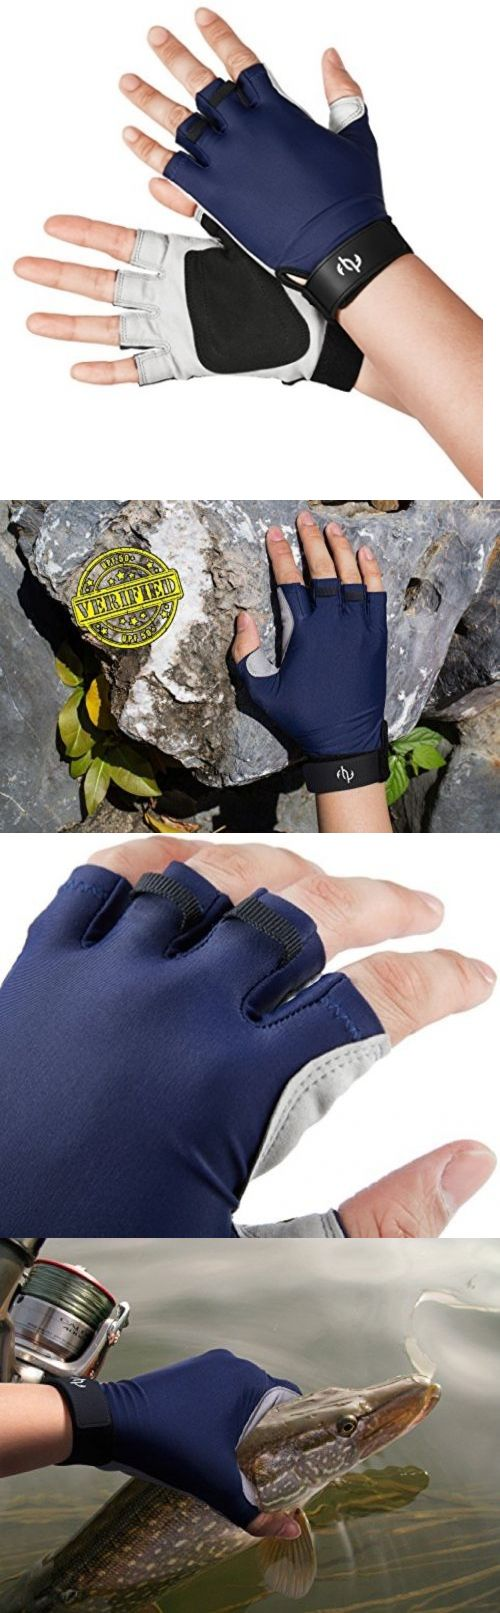 Driving gloves london ontario - Gloves 65974 Sun Protection Fingerless Gloves Verified Upf 50 Uv No Chemicals